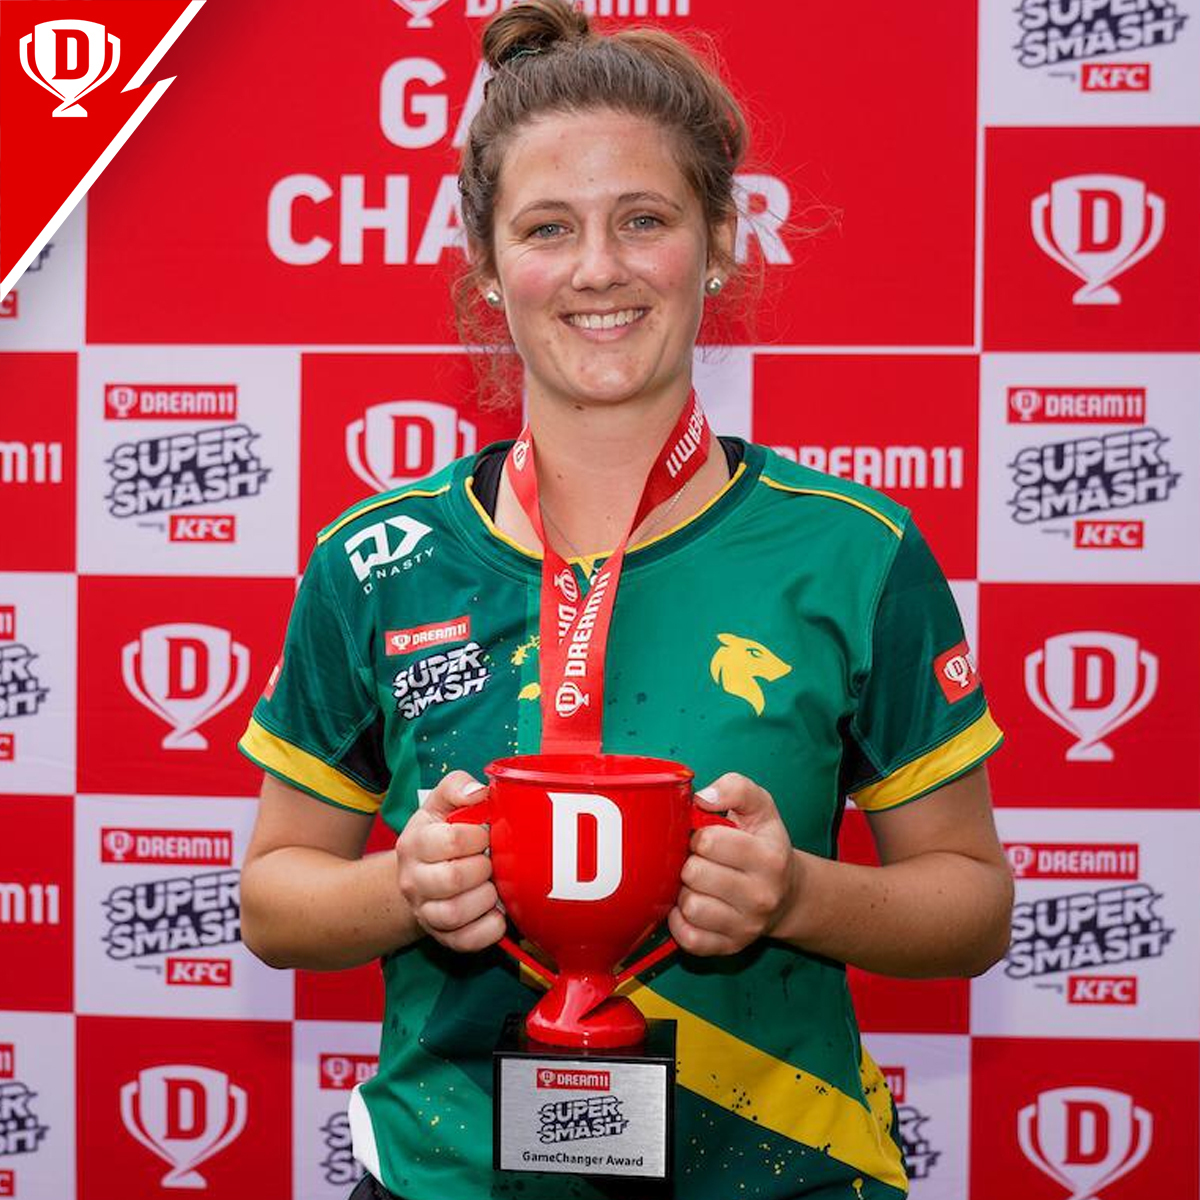 Take a look at the #Dream11GameChanger award winners from today's #Dream11 @SuperSmashNZ matches 🤩  #CentralHinds' Anlo van Deventer - 63* off 40 balls #CentralStags' Josh Clarkson - 2/30 and 31 runs off 19 balls  Their performances helped their respective teams to win 👏